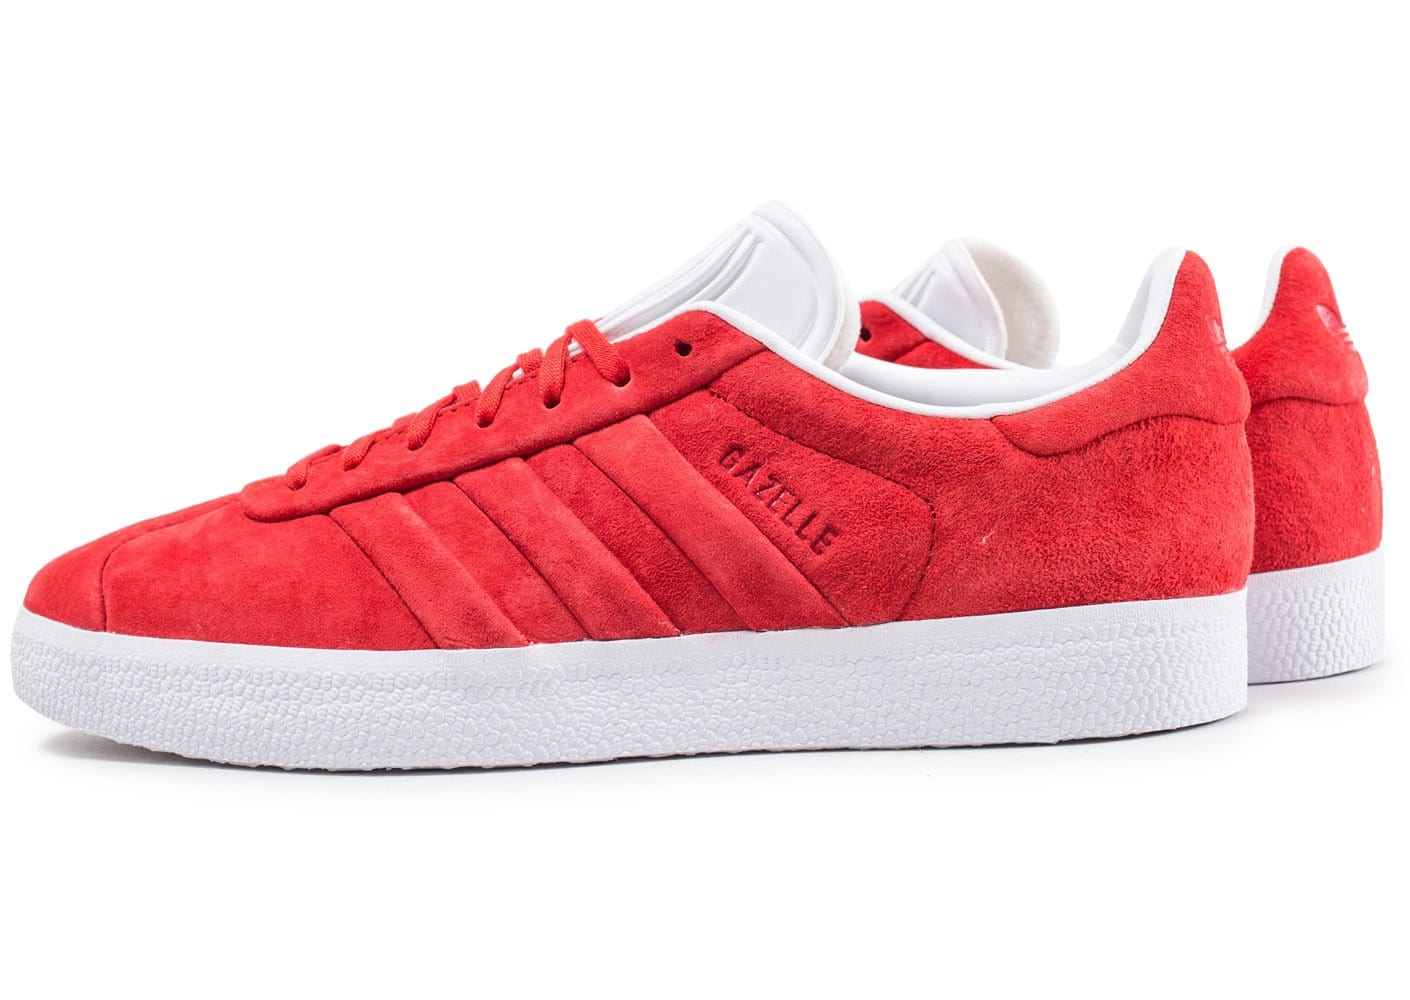 adidas Gazelle Stitch and Turn rouge Chaussures Baskets